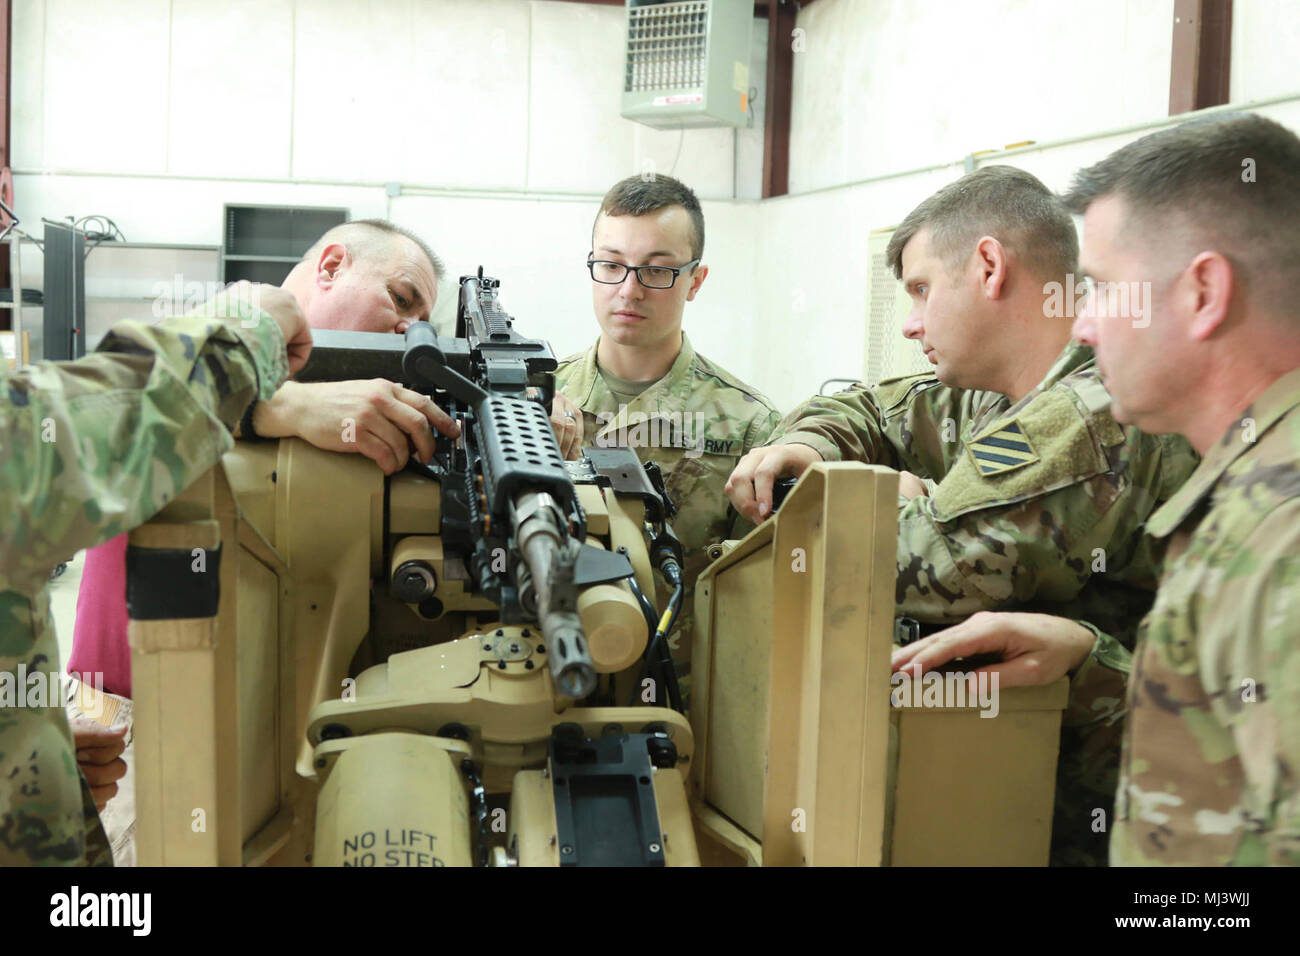 Fort Stewart, Ga., March 20, 2018 - Georgia Army National Gaurdsman Spc. Brandon C. Schultz, military policement, 179th Military Police Company, Fort, Stewart, Ga., briefs the performance steps to a group of Soldiers during the CROWS Instructors training course.  The Common Remotely Operated Weapon Station is an externally mounted weapons control system that allows the gunner to remain inside the vehicle while firing various crew served weapons.  (Georgia Army National Guard Image collection celebrating the bravery dedication commitment and sacrifice of U.S. Armed Forces and civilian personnel Stock Photo